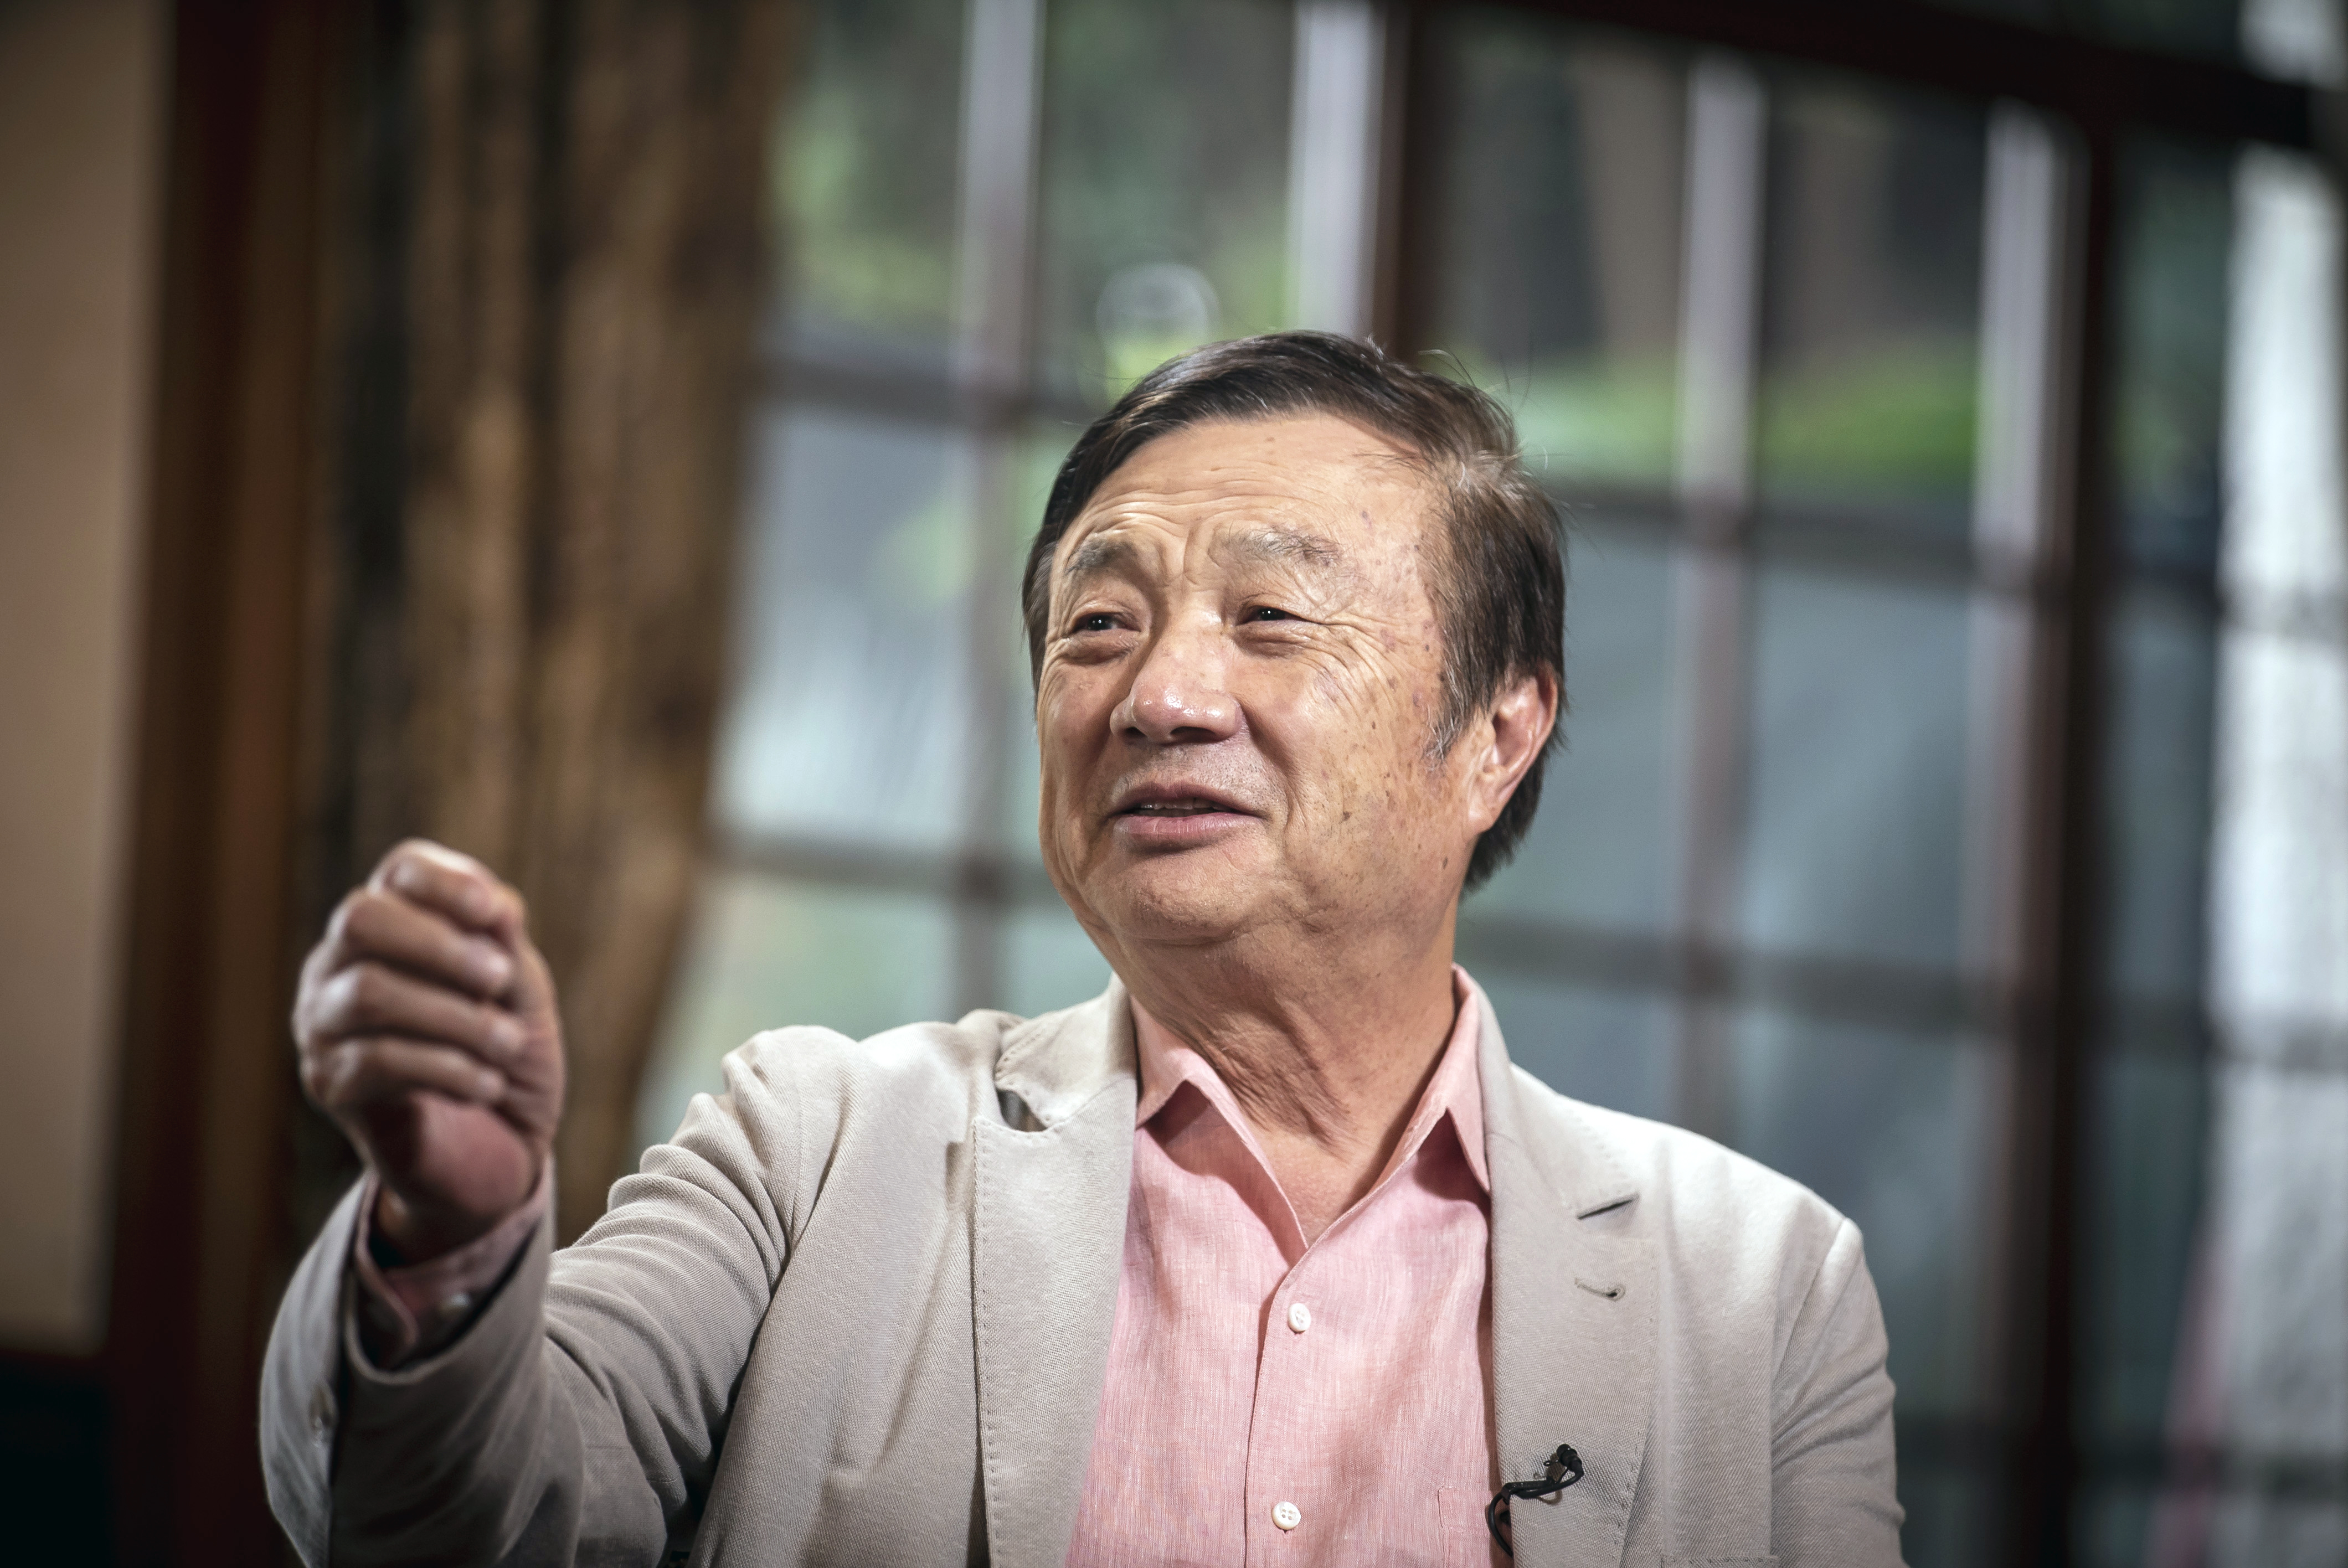 Ren Zhengfei, founder and chief executive officer of Huawei Technologies Co., speaks during a Bloomberg Television interview at the company's headquarters in Shenzhen, China, on Friday, May 24, 2019.